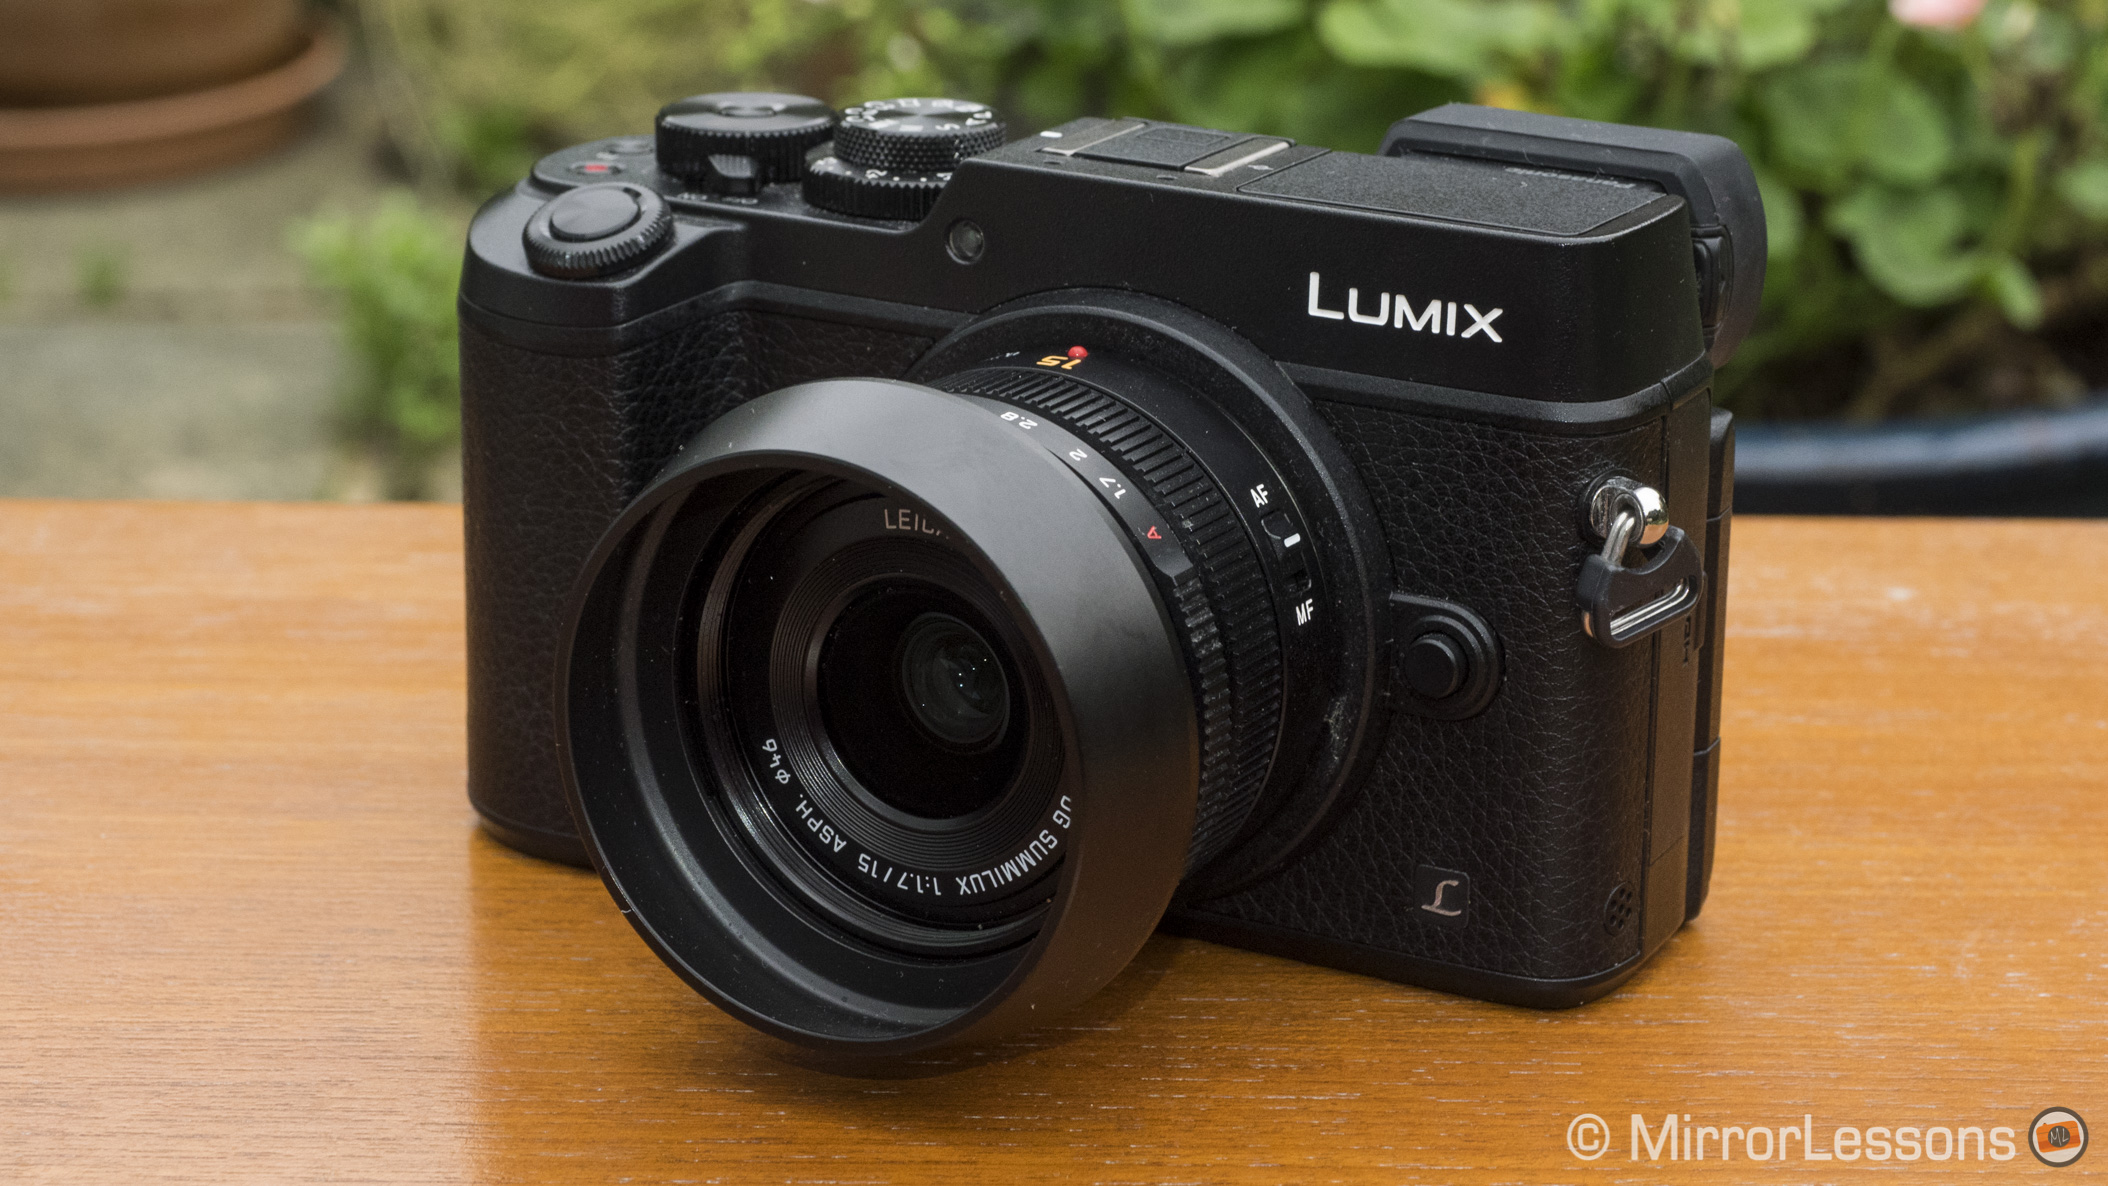 panasonic lumix camera reviews